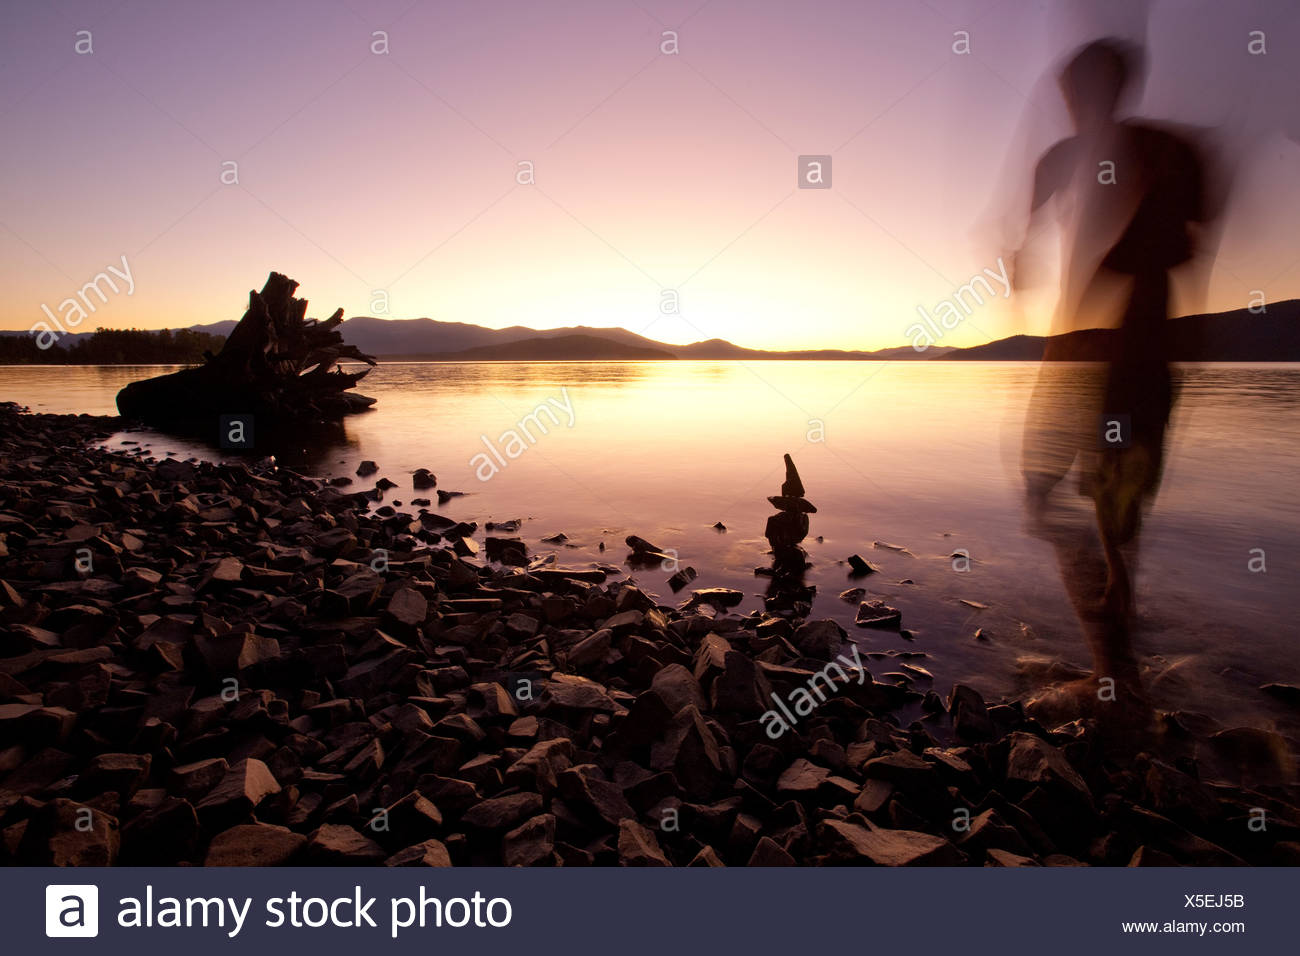 A male figure watching sunset over a lake and mountains in Idaho. - Stock Image